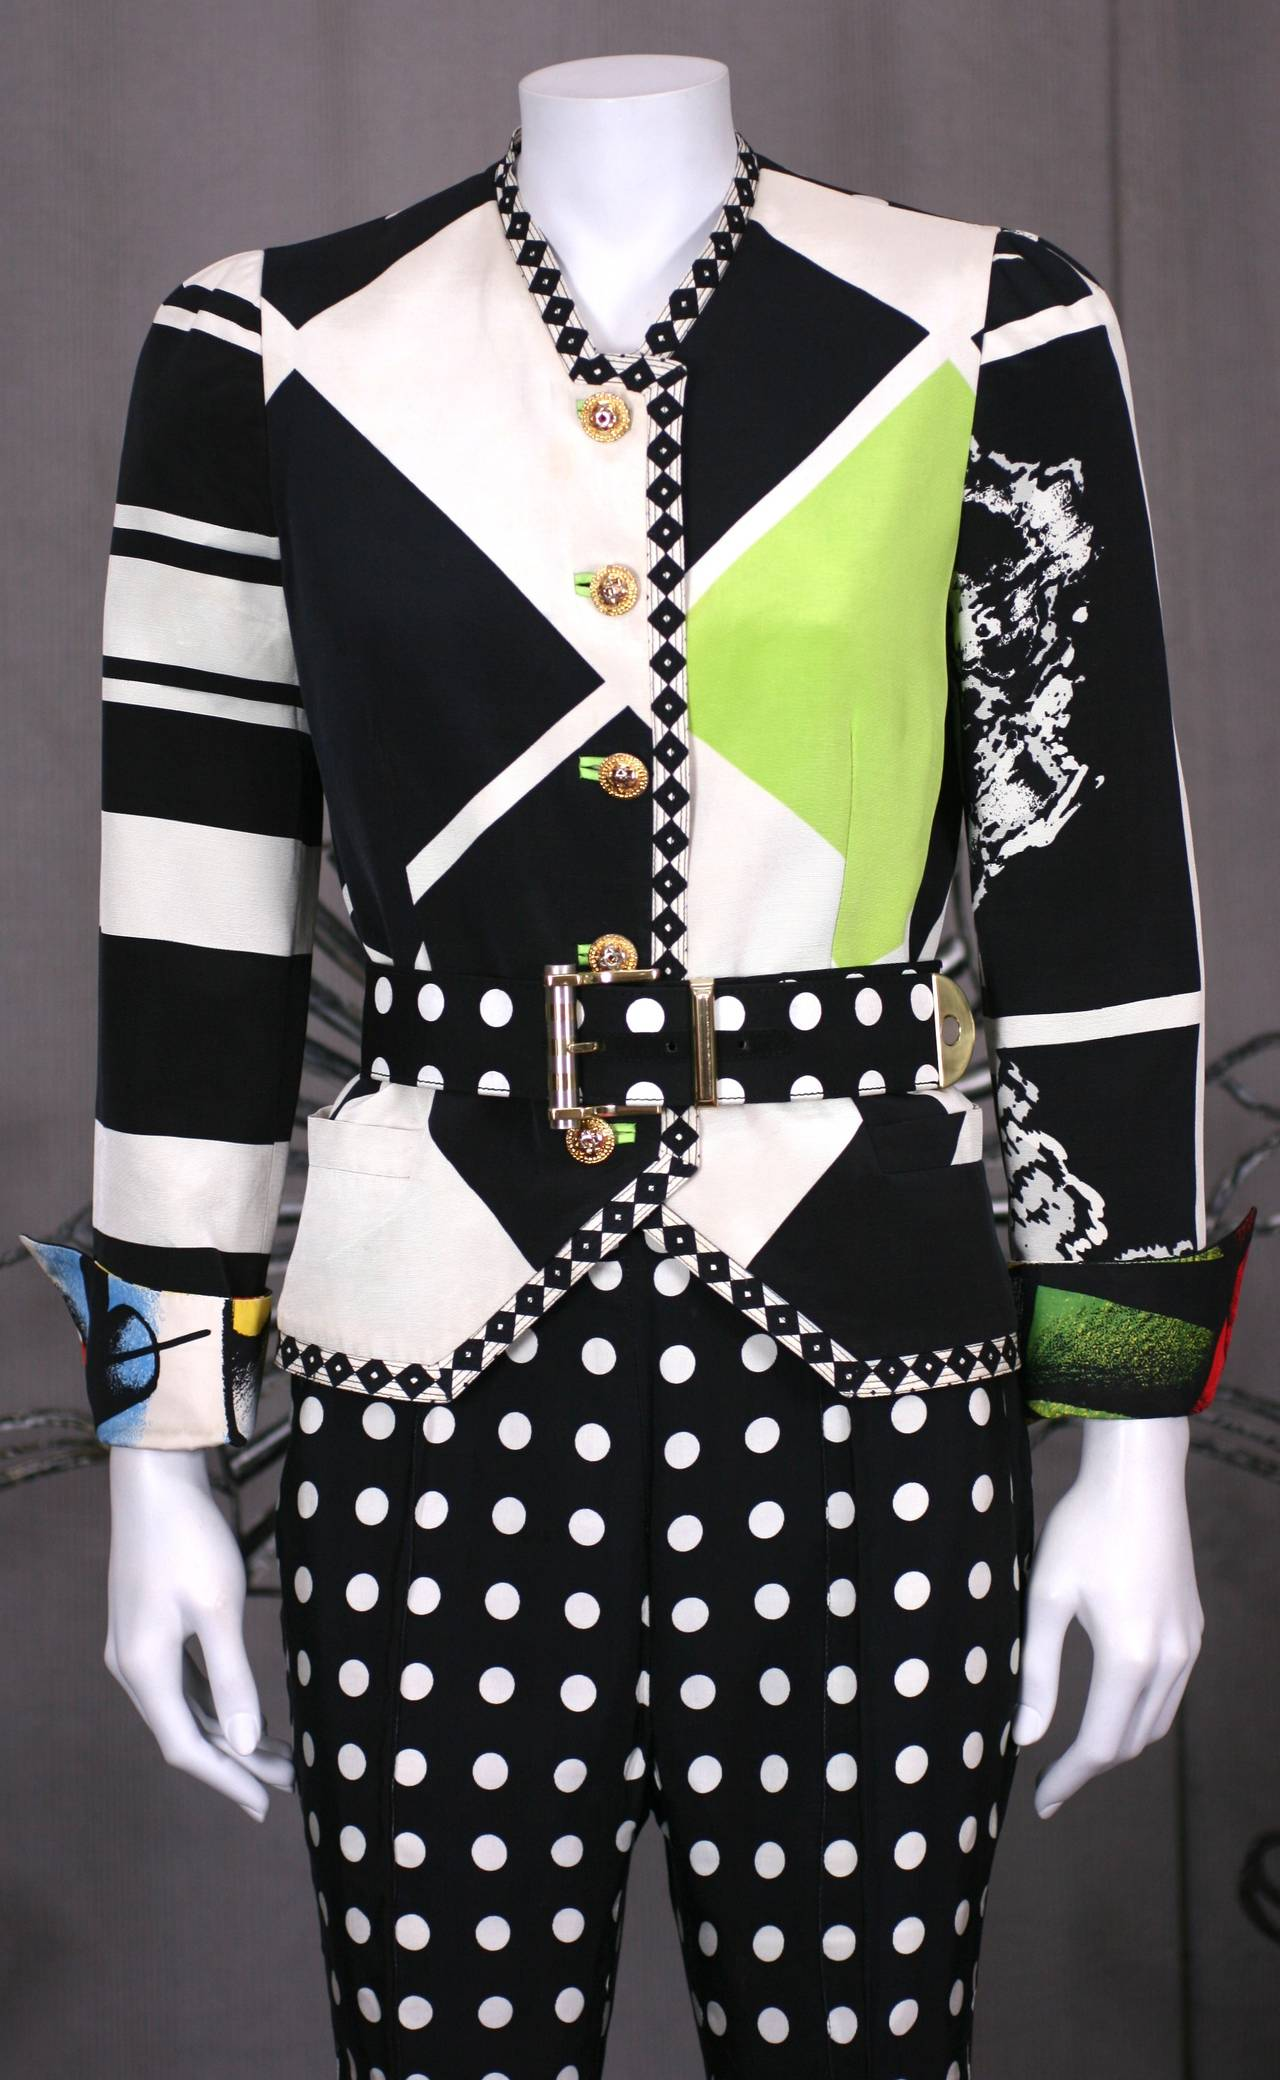 Gianni Versace's Black and White Graphic Suit with Pop Art overtones. Black and white geometrics and dots contrast with the brightly illustrated silk fashion